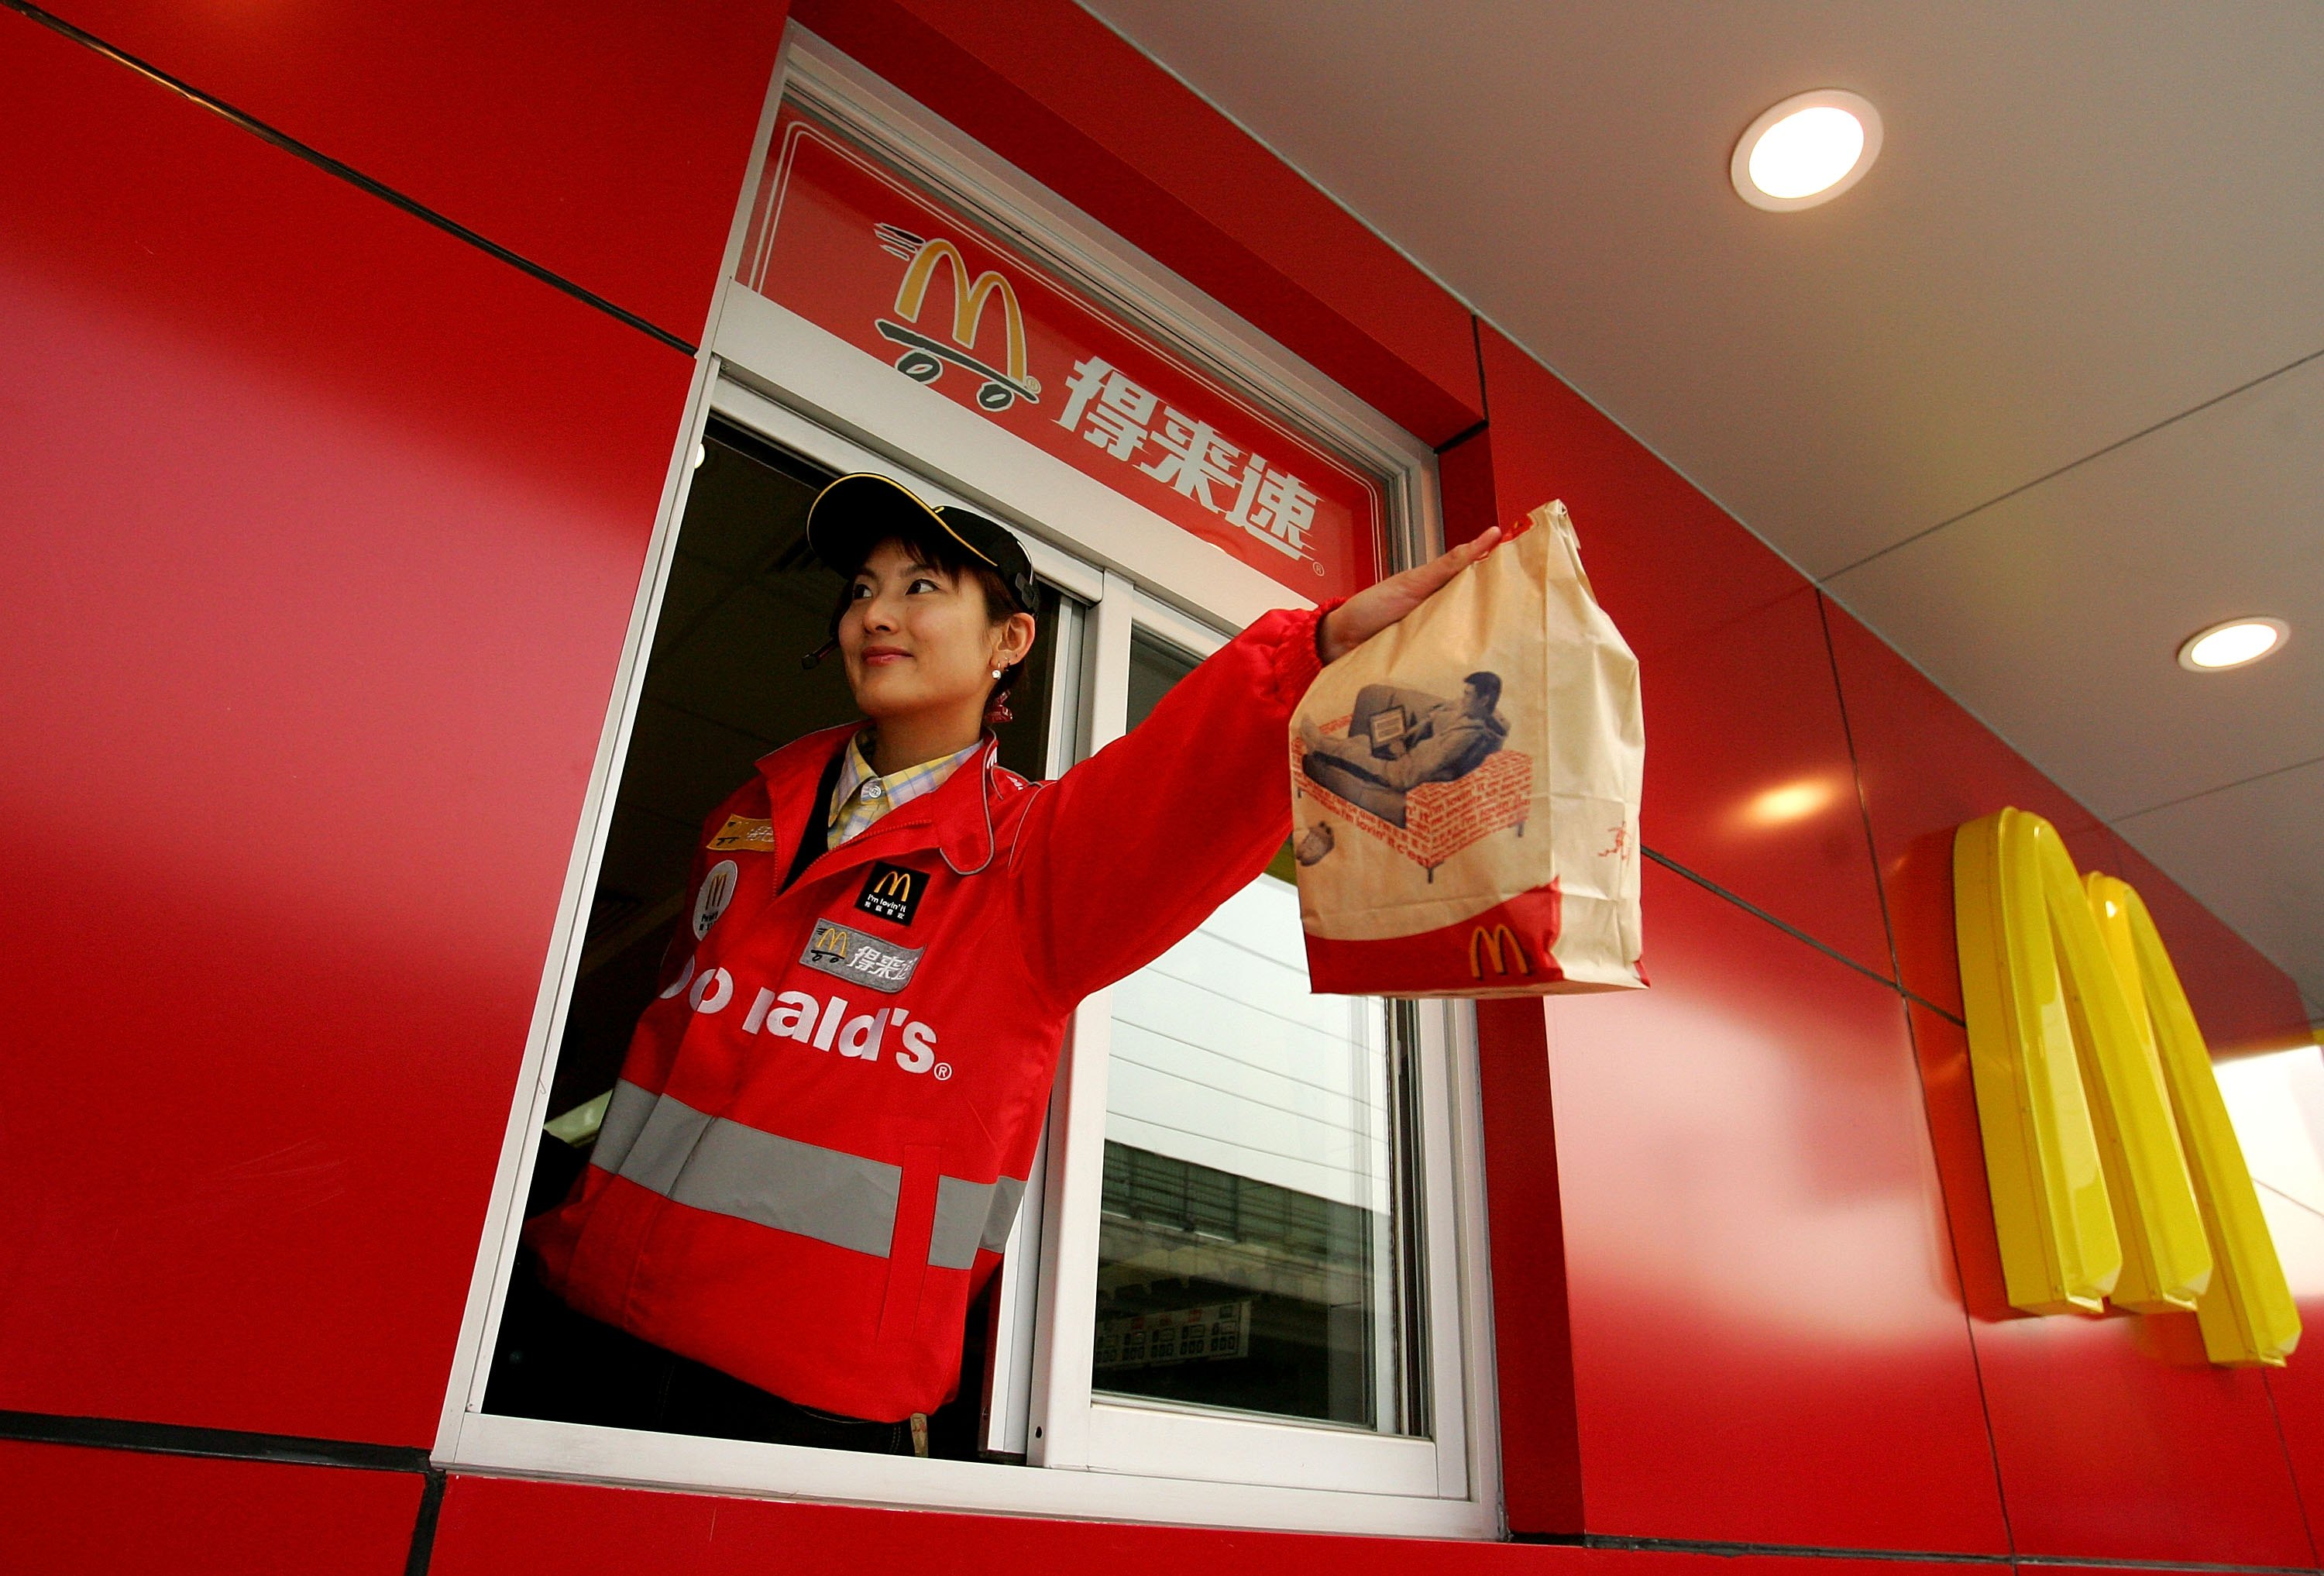 A New McDonald's Drive-Thru Facility Opens In Beijing